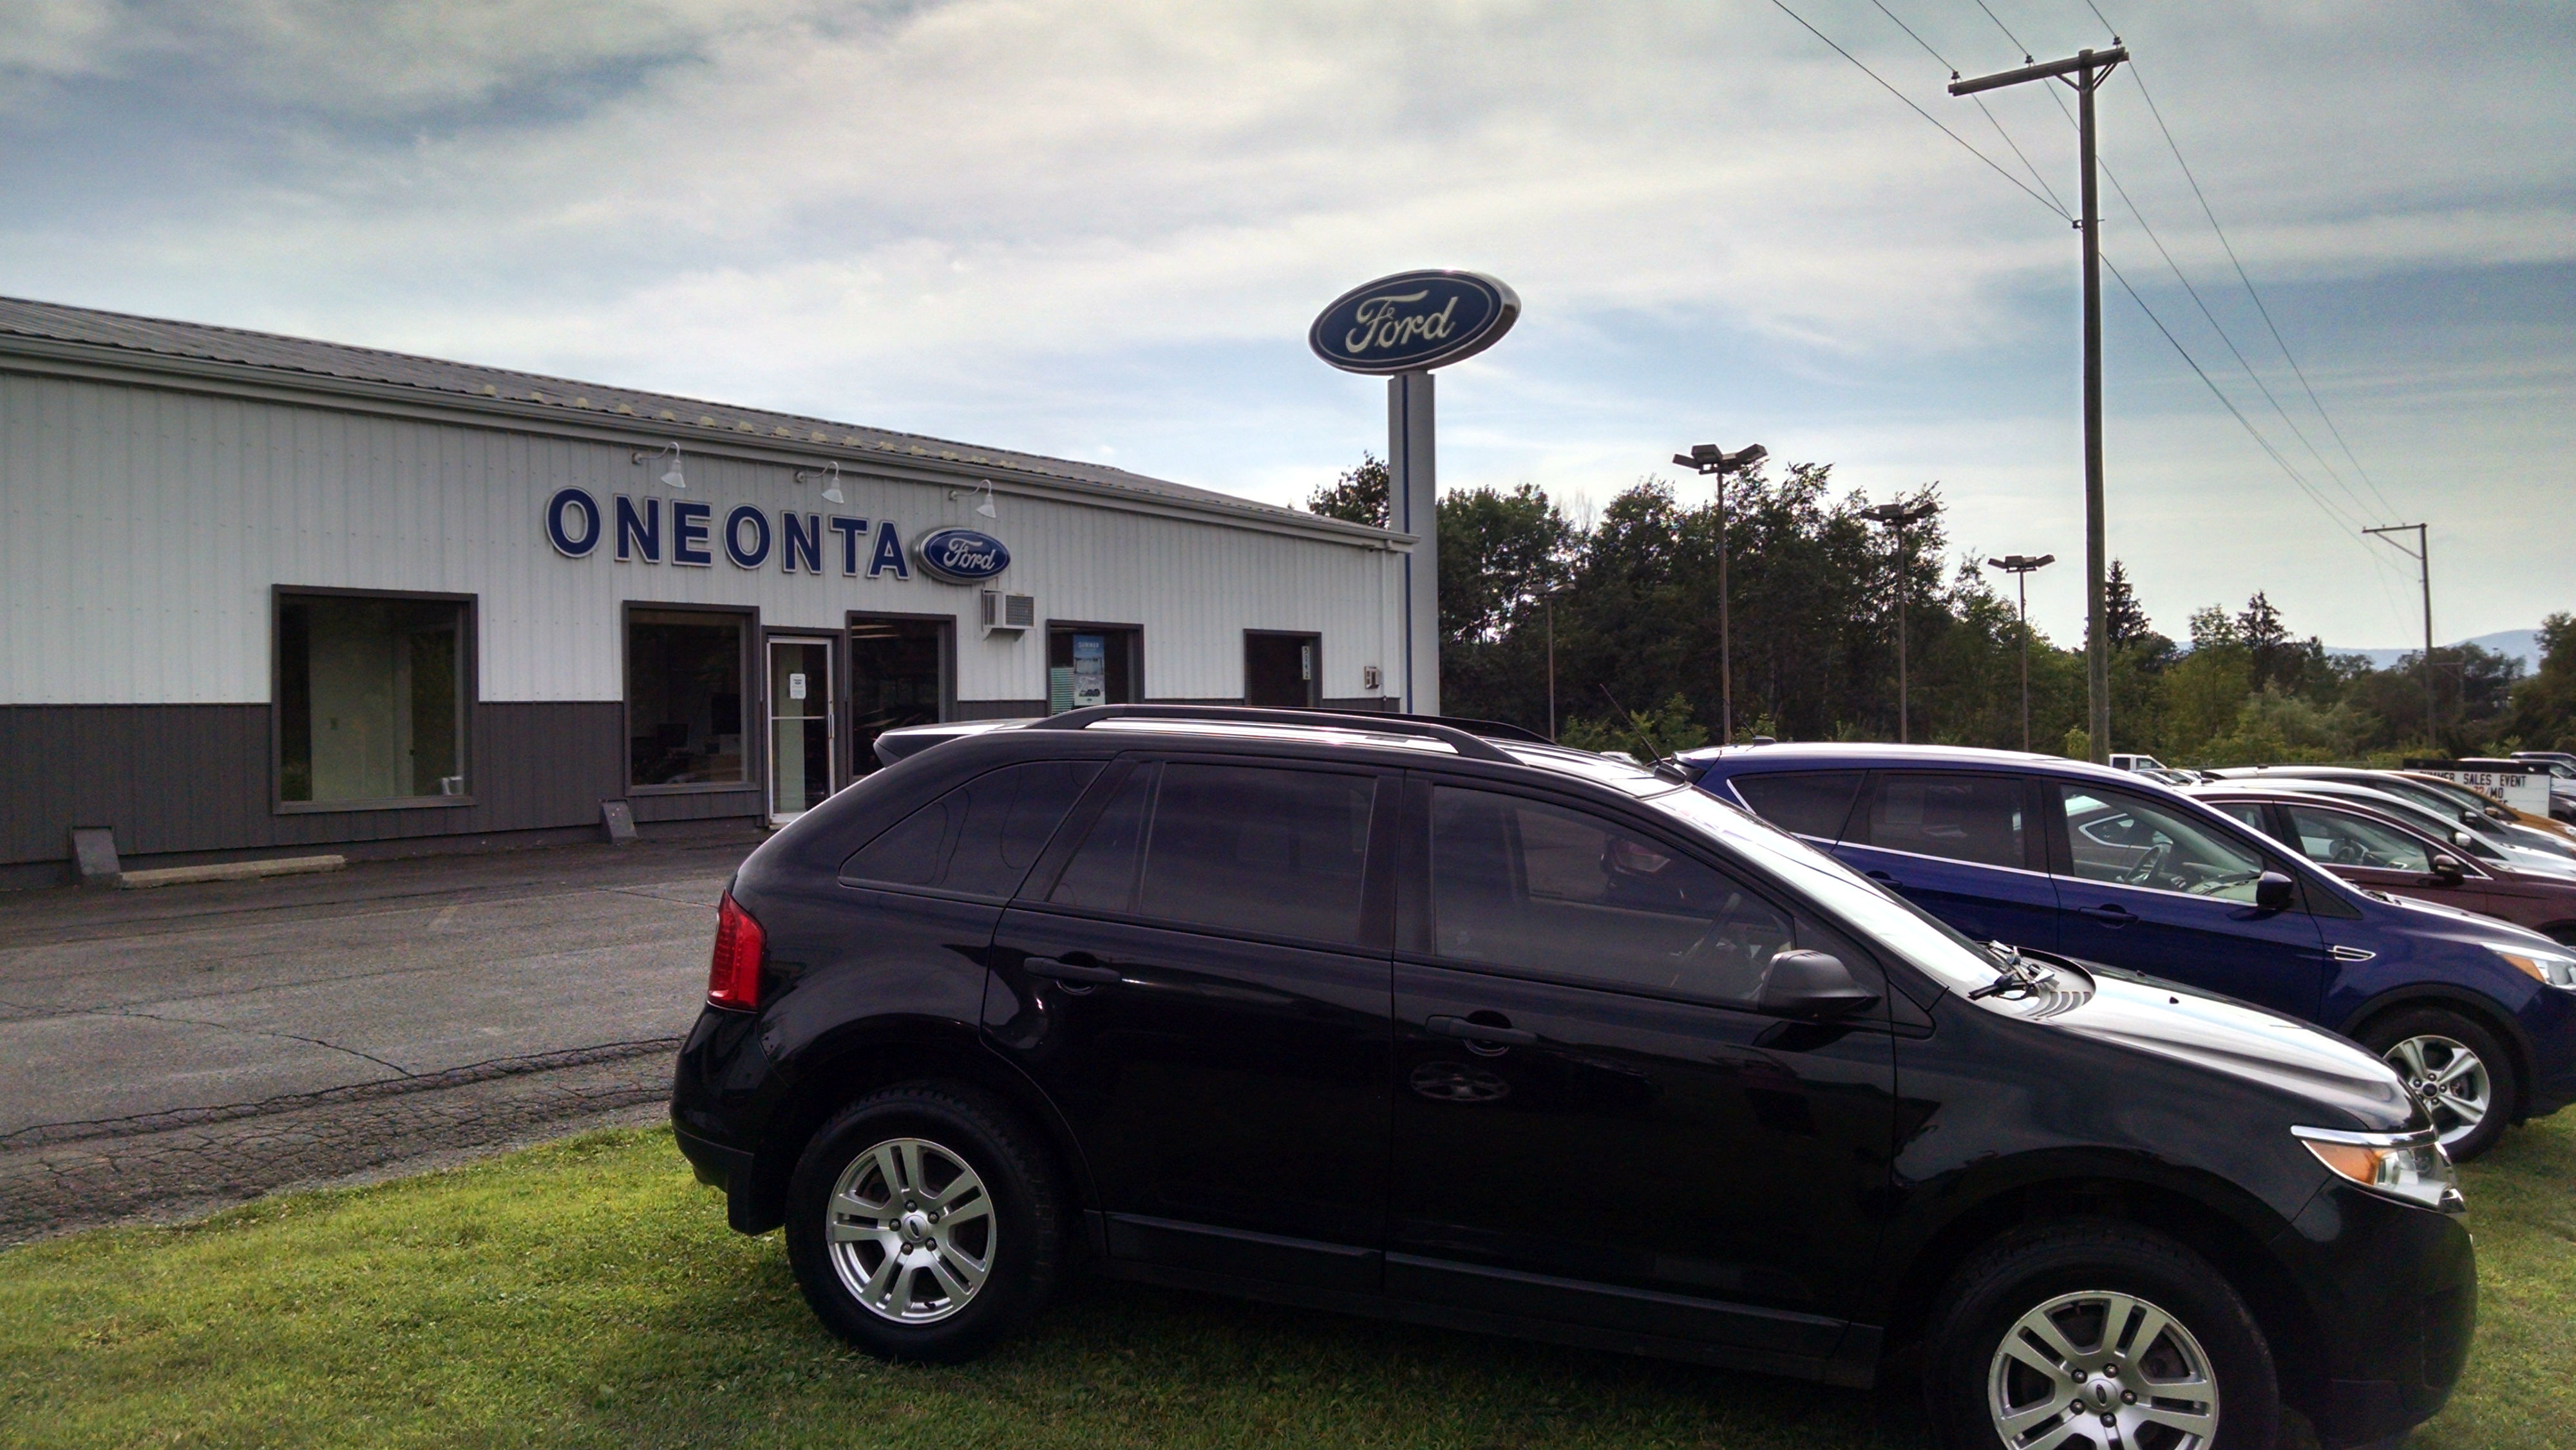 oneonta ford dealer about oneonta ford llc. Black Bedroom Furniture Sets. Home Design Ideas